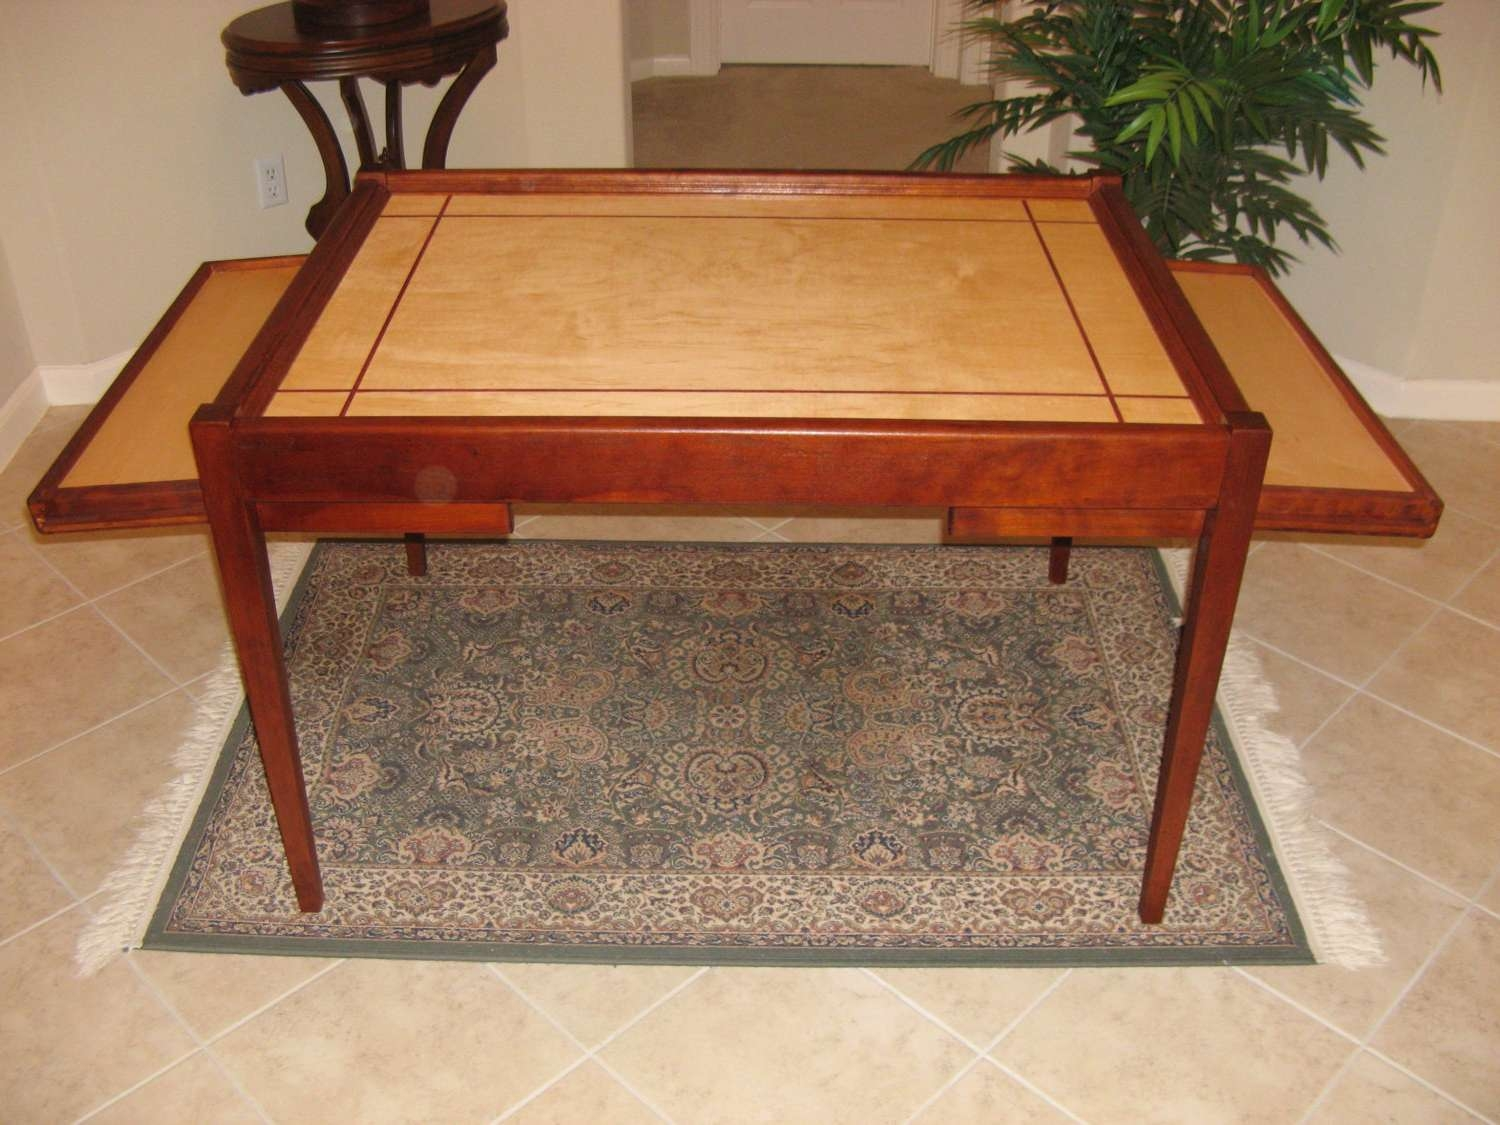 Jigsaw Puzzle Table With Additional Legroom In Most Current Puzzle Coffee Tables (View 12 of 20)